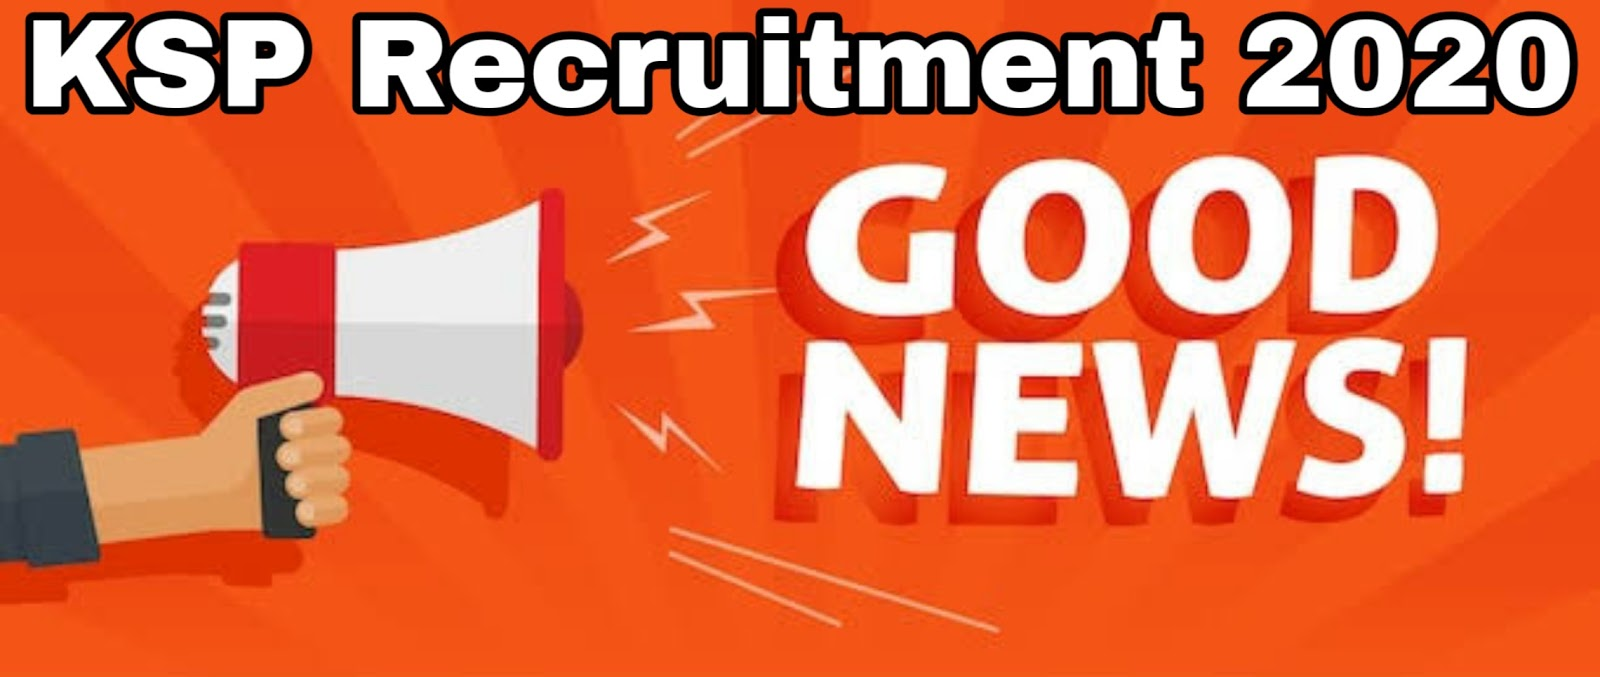 KSP/KPSC Recruitment 2020 -There is no financial burden to complete many recruitment processes, including the SDA, FDA, PC, PSI, ACF, KAS, TET, KSET, which have already begun recruitment, so the government will soon give the green signal to continue